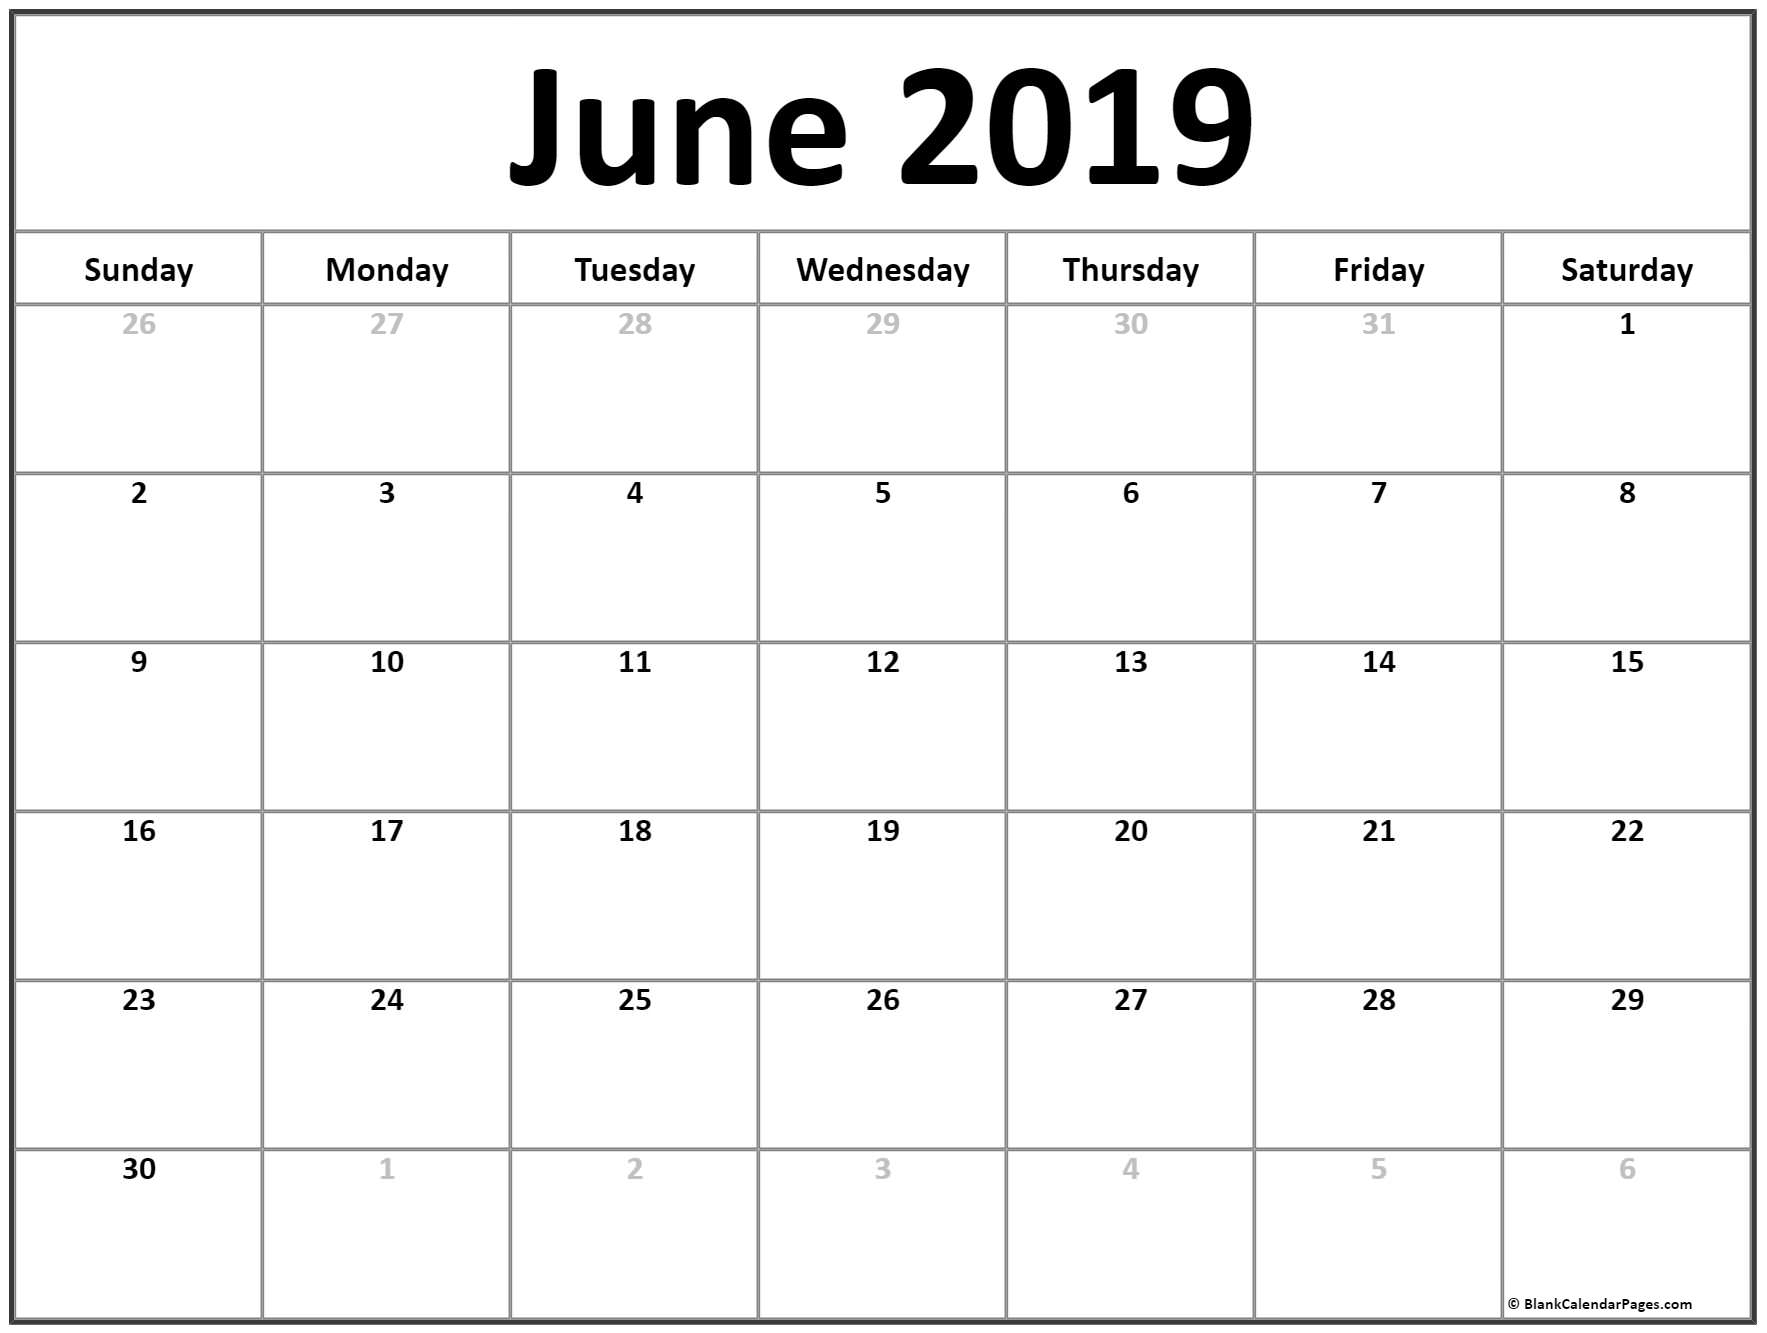 Prime June 2019 Month Blank Calander Monday Thru Friday Only with Monday Through Friday Blank Schedule Print Out